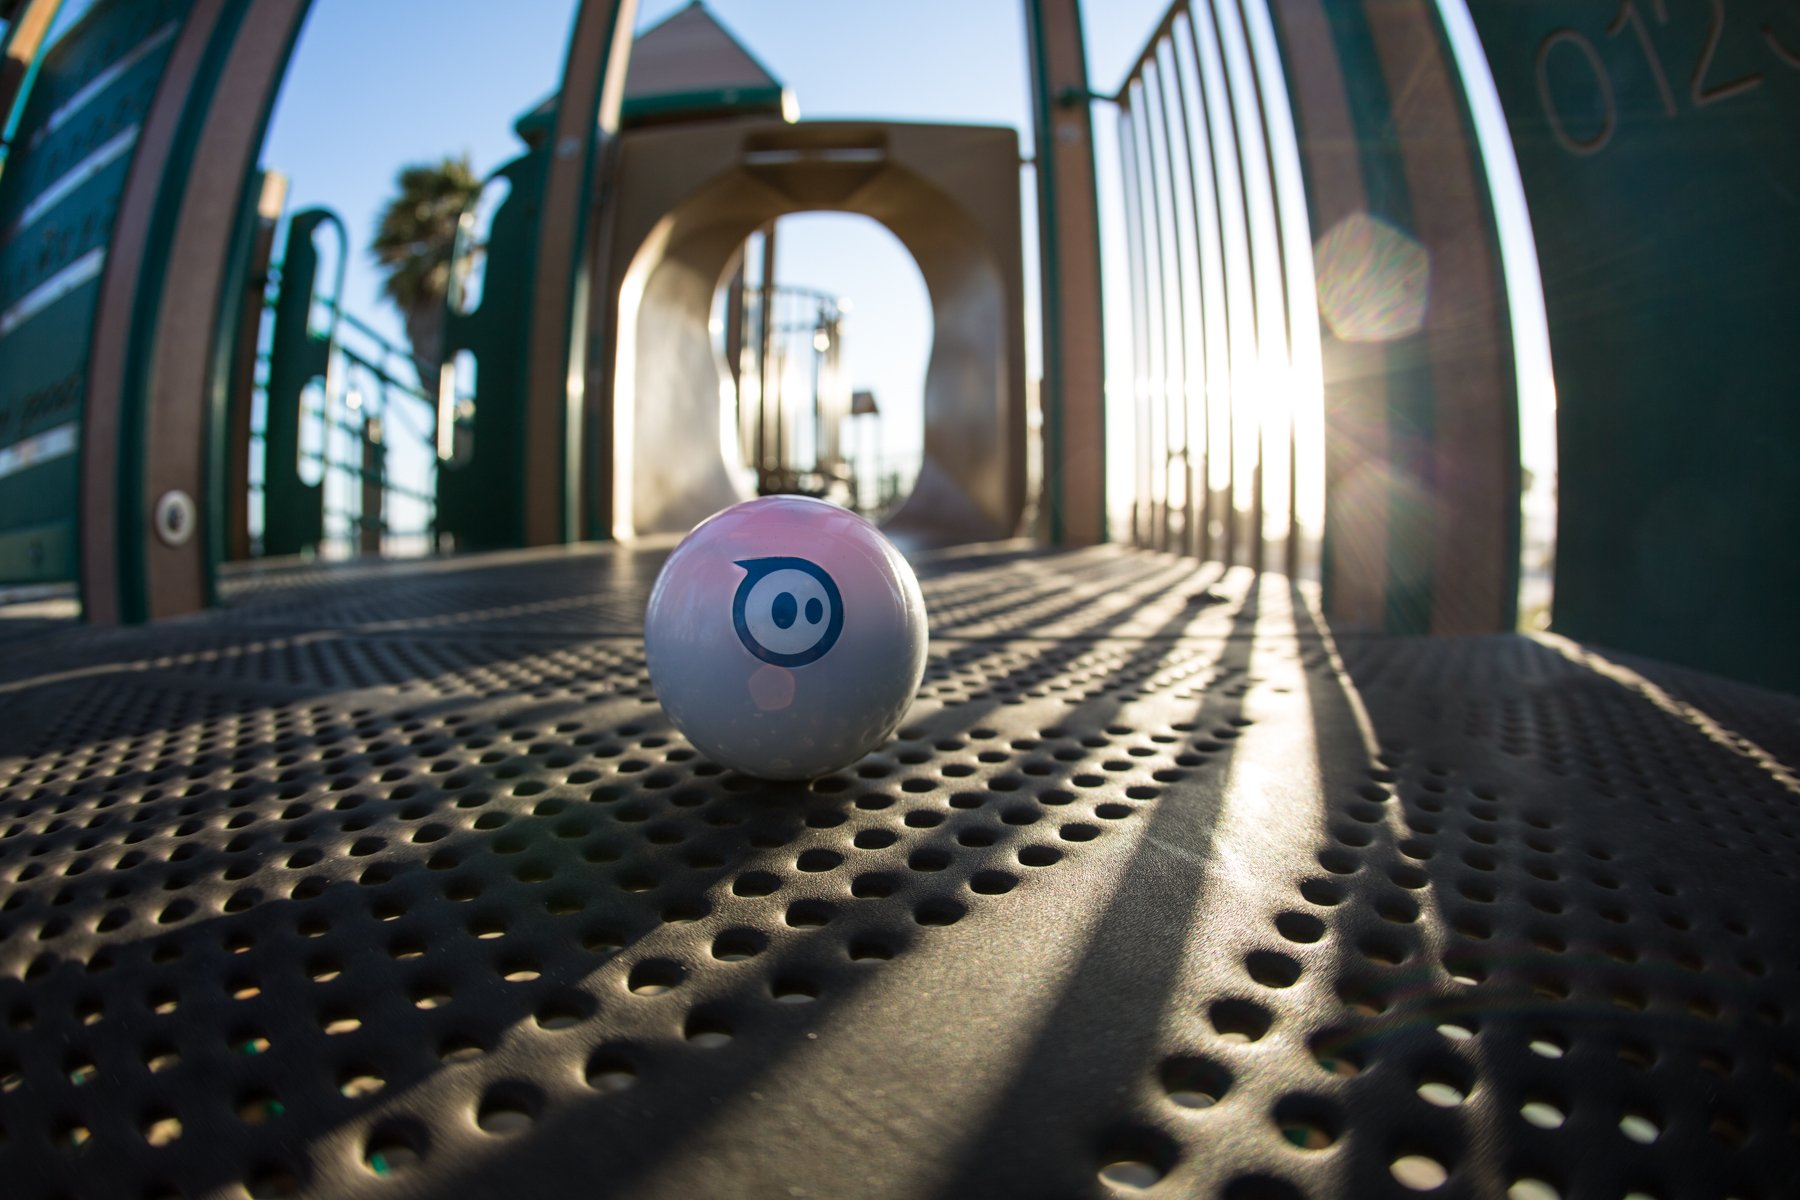 Sphero iOS and Android App Controlled Robotic Ball - Retail Packaging - White (Discontinued by Manufacturer) by Sphero (Image #11)